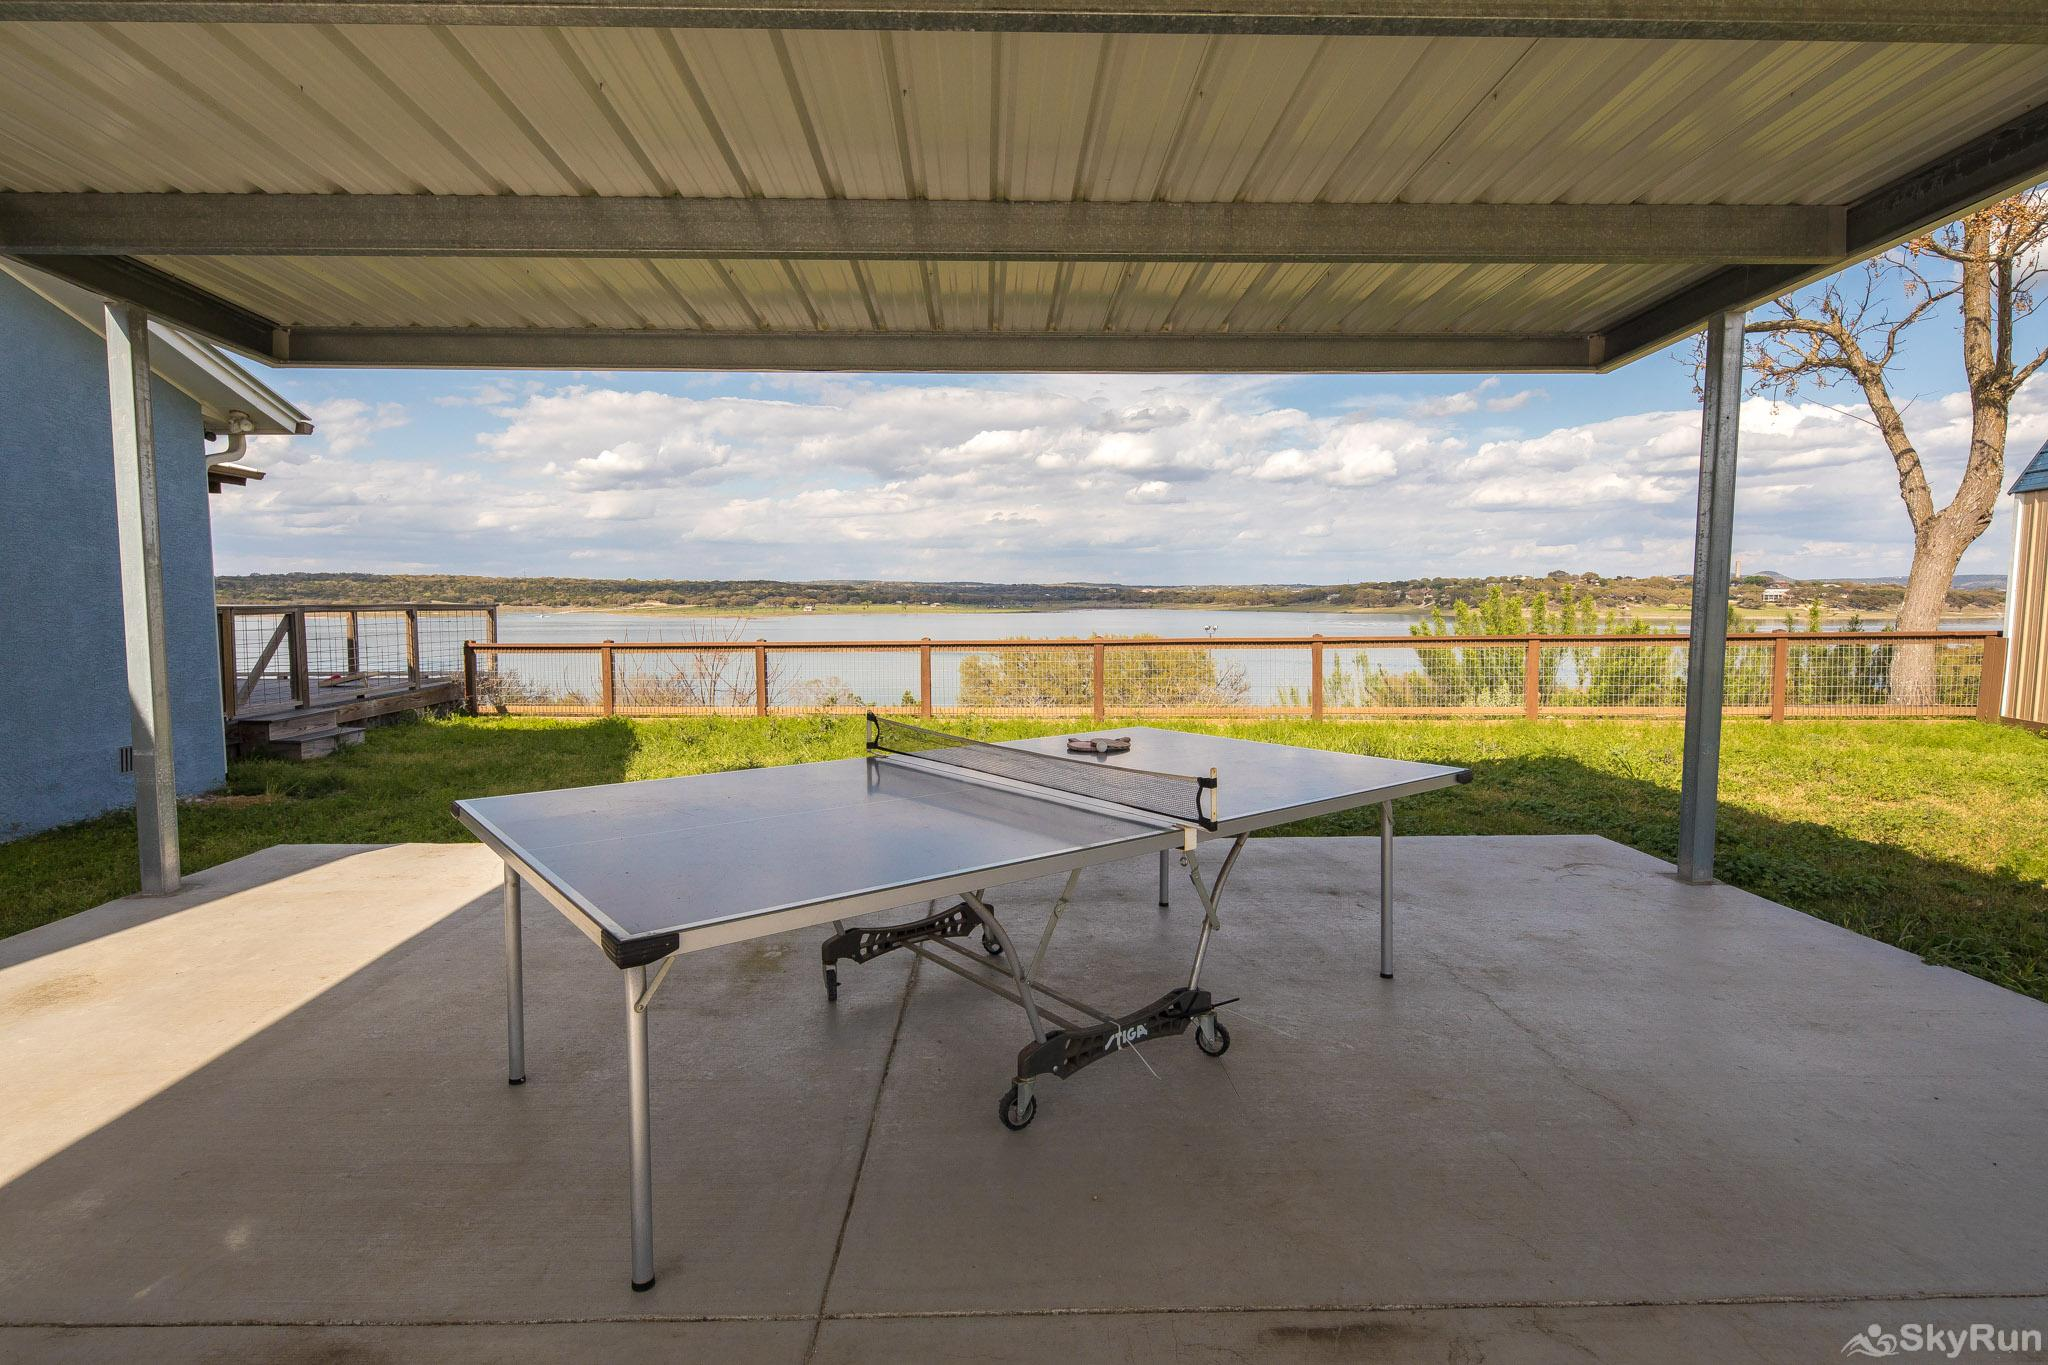 LEDGEROCK POINTE Ping pong table under covered awning